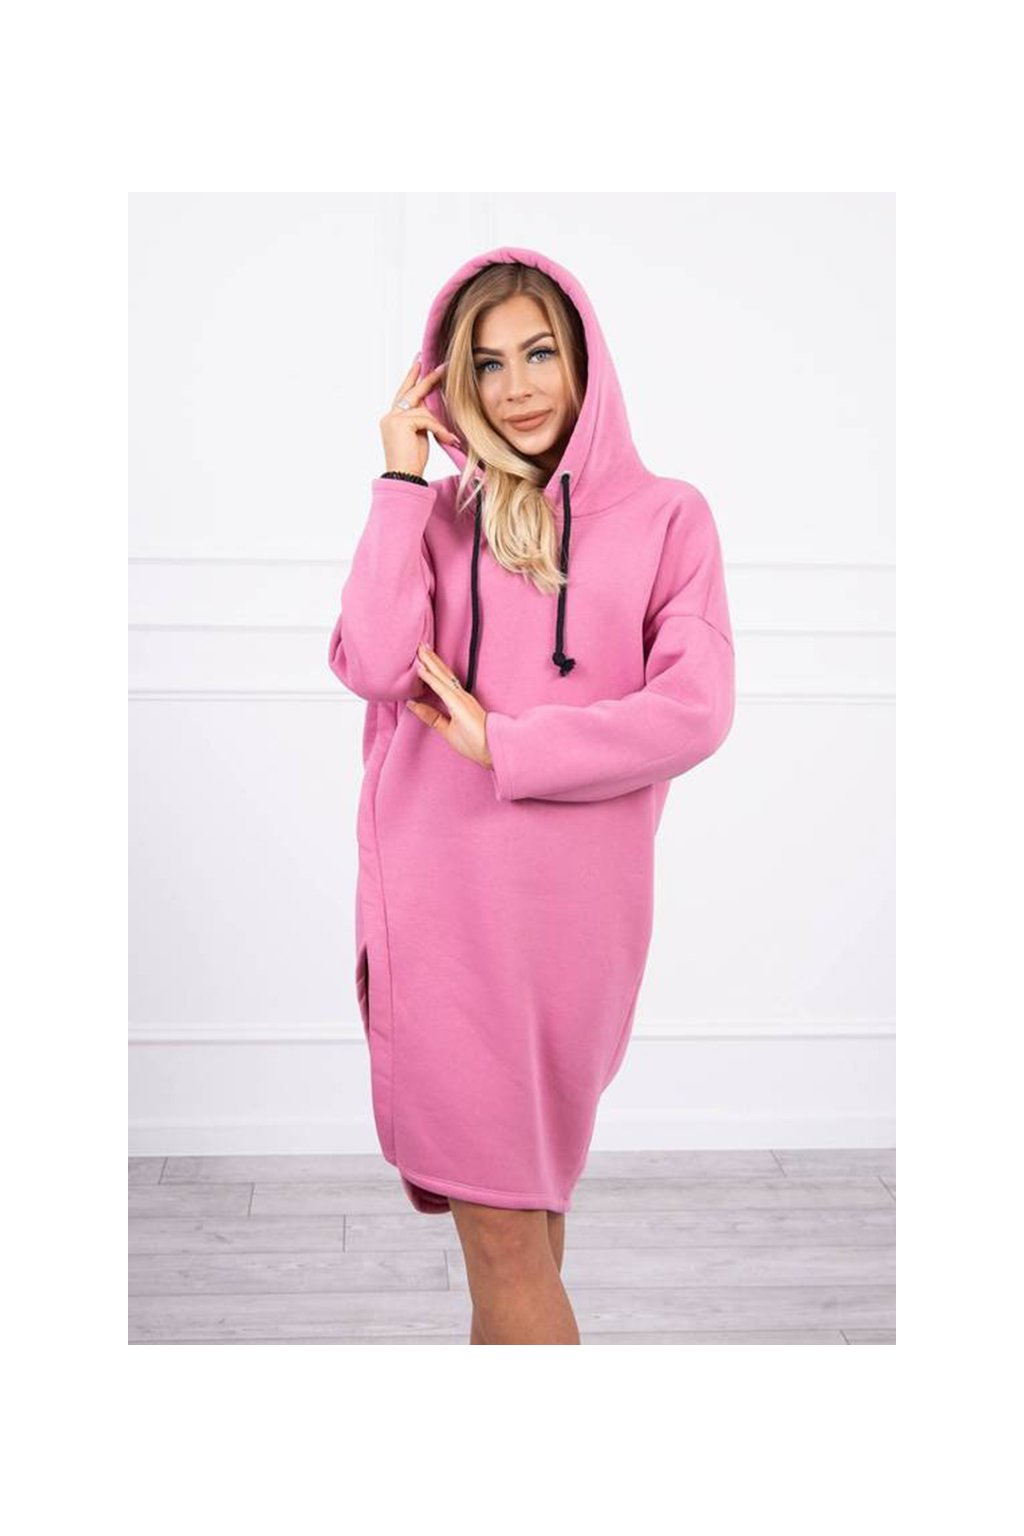 eng pm Dress with a hood and a slit on the side pink 19531 6